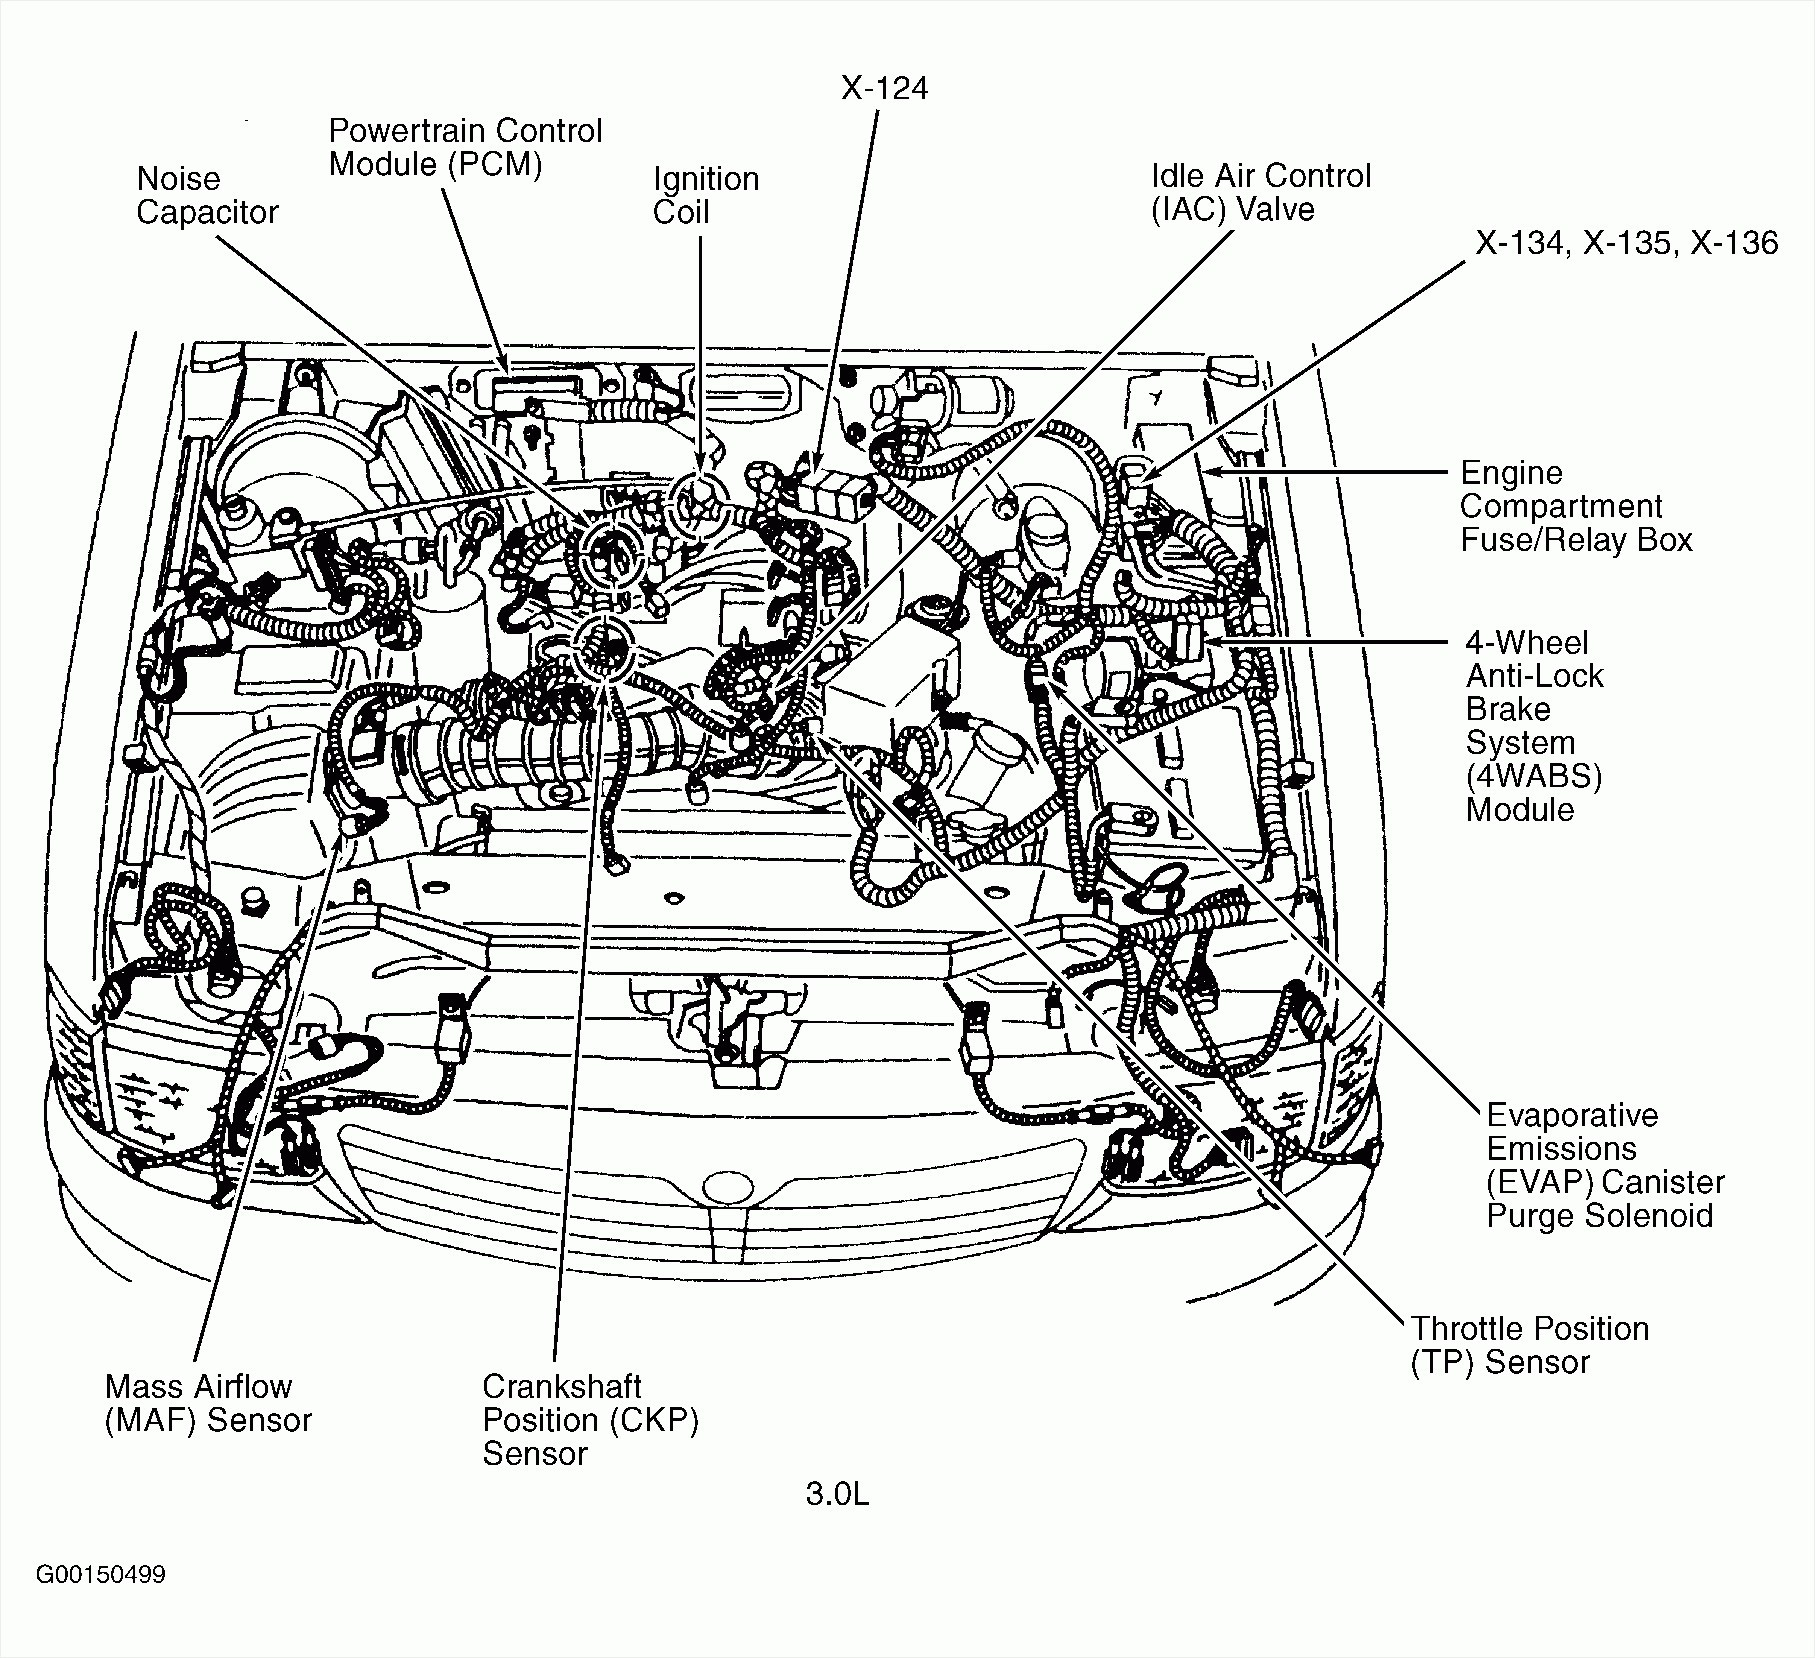 hight resolution of 2002 pontiac grand prix 3 8 engine diagram simple wiring schema 2002 pontiac grand prix intake manifold gasket diagram wiring